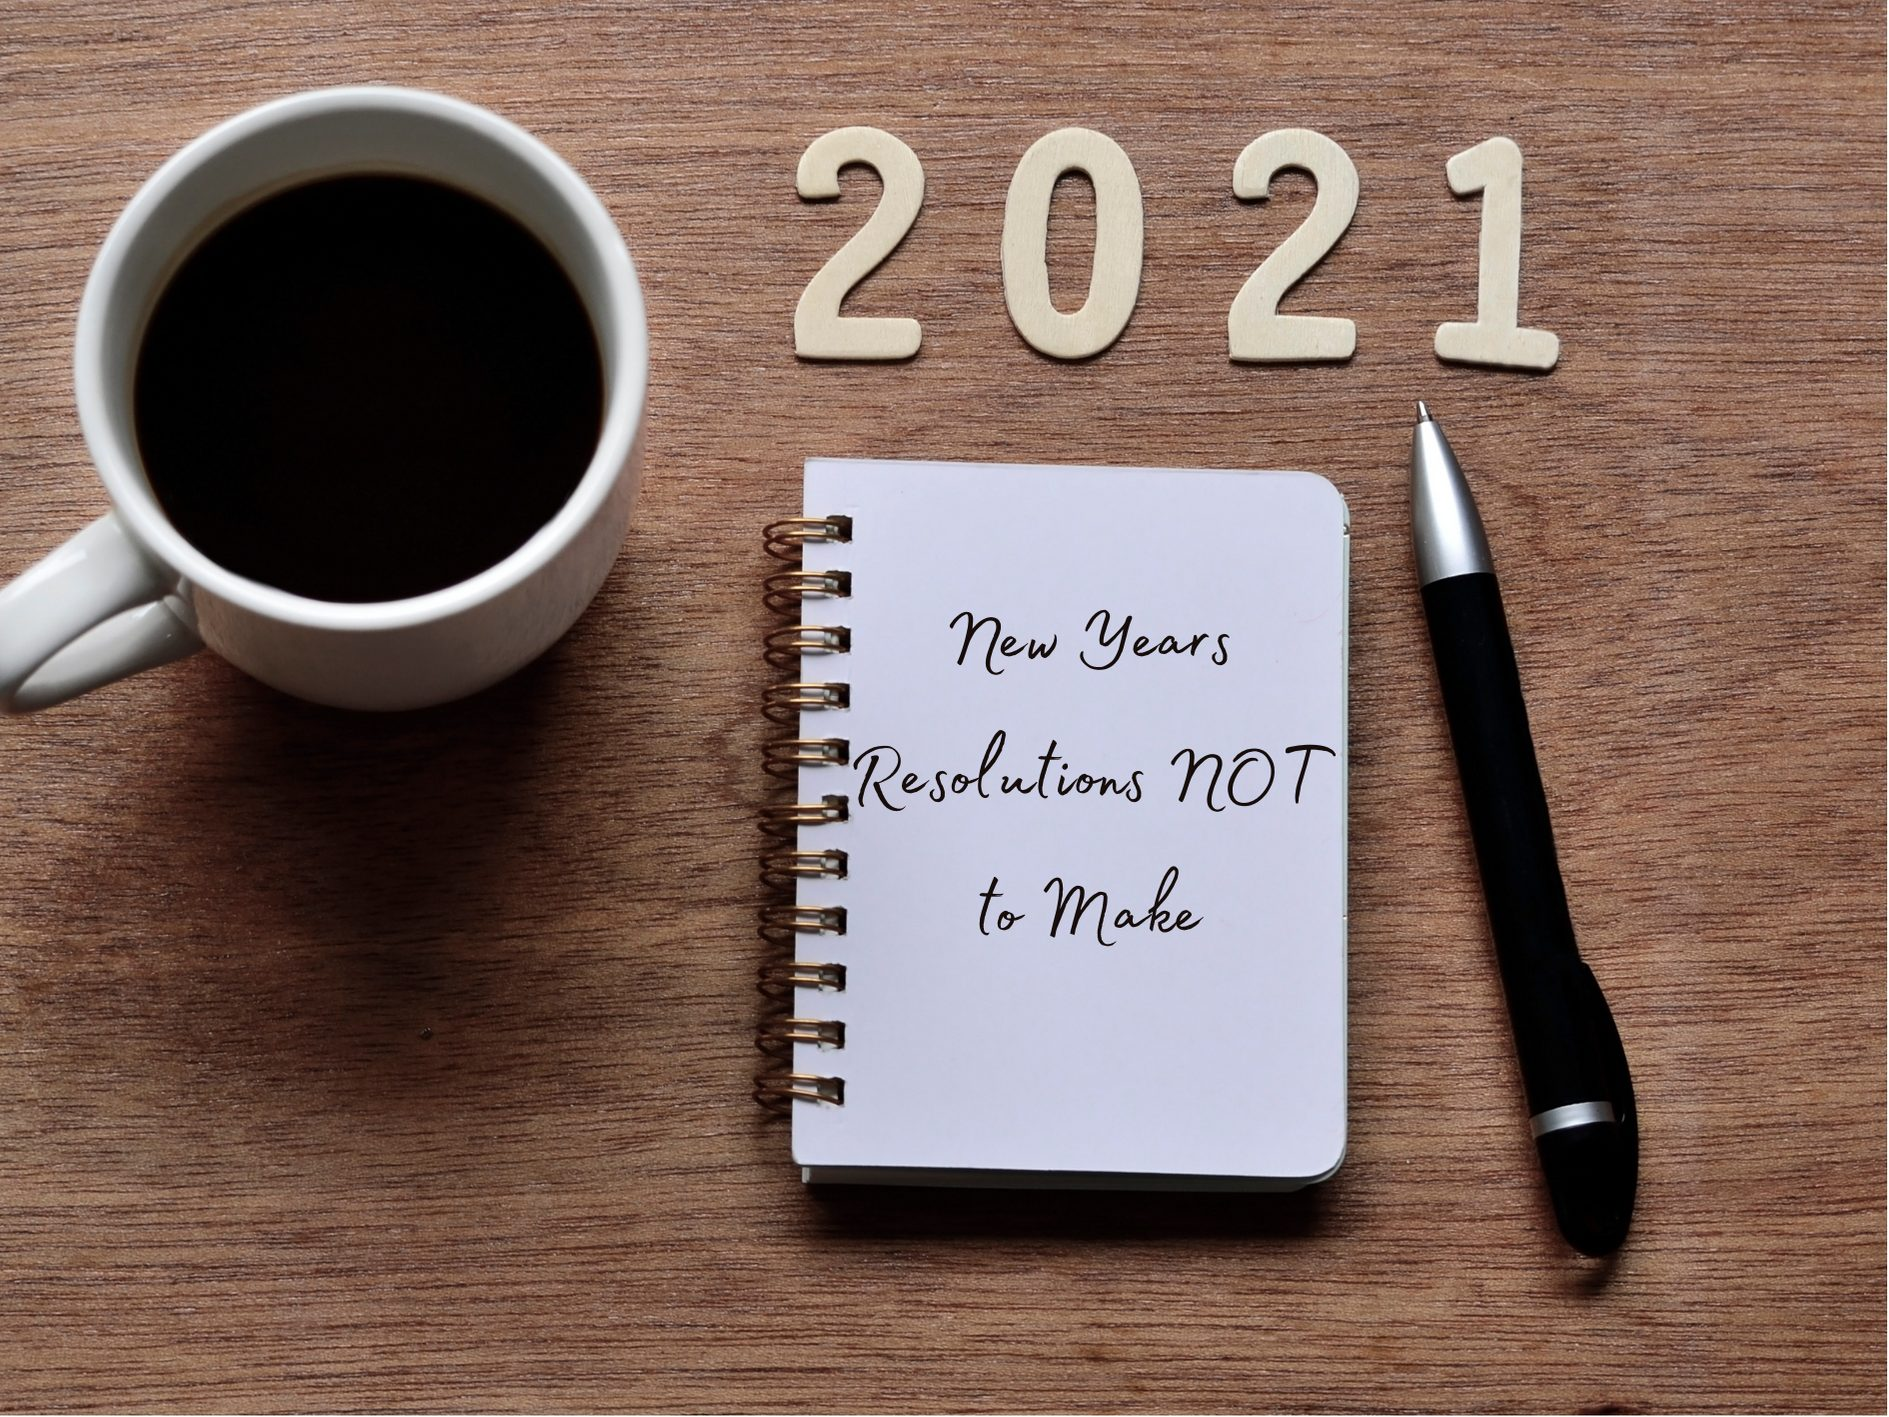 4 New Years Resolutions Not to Make for 2021